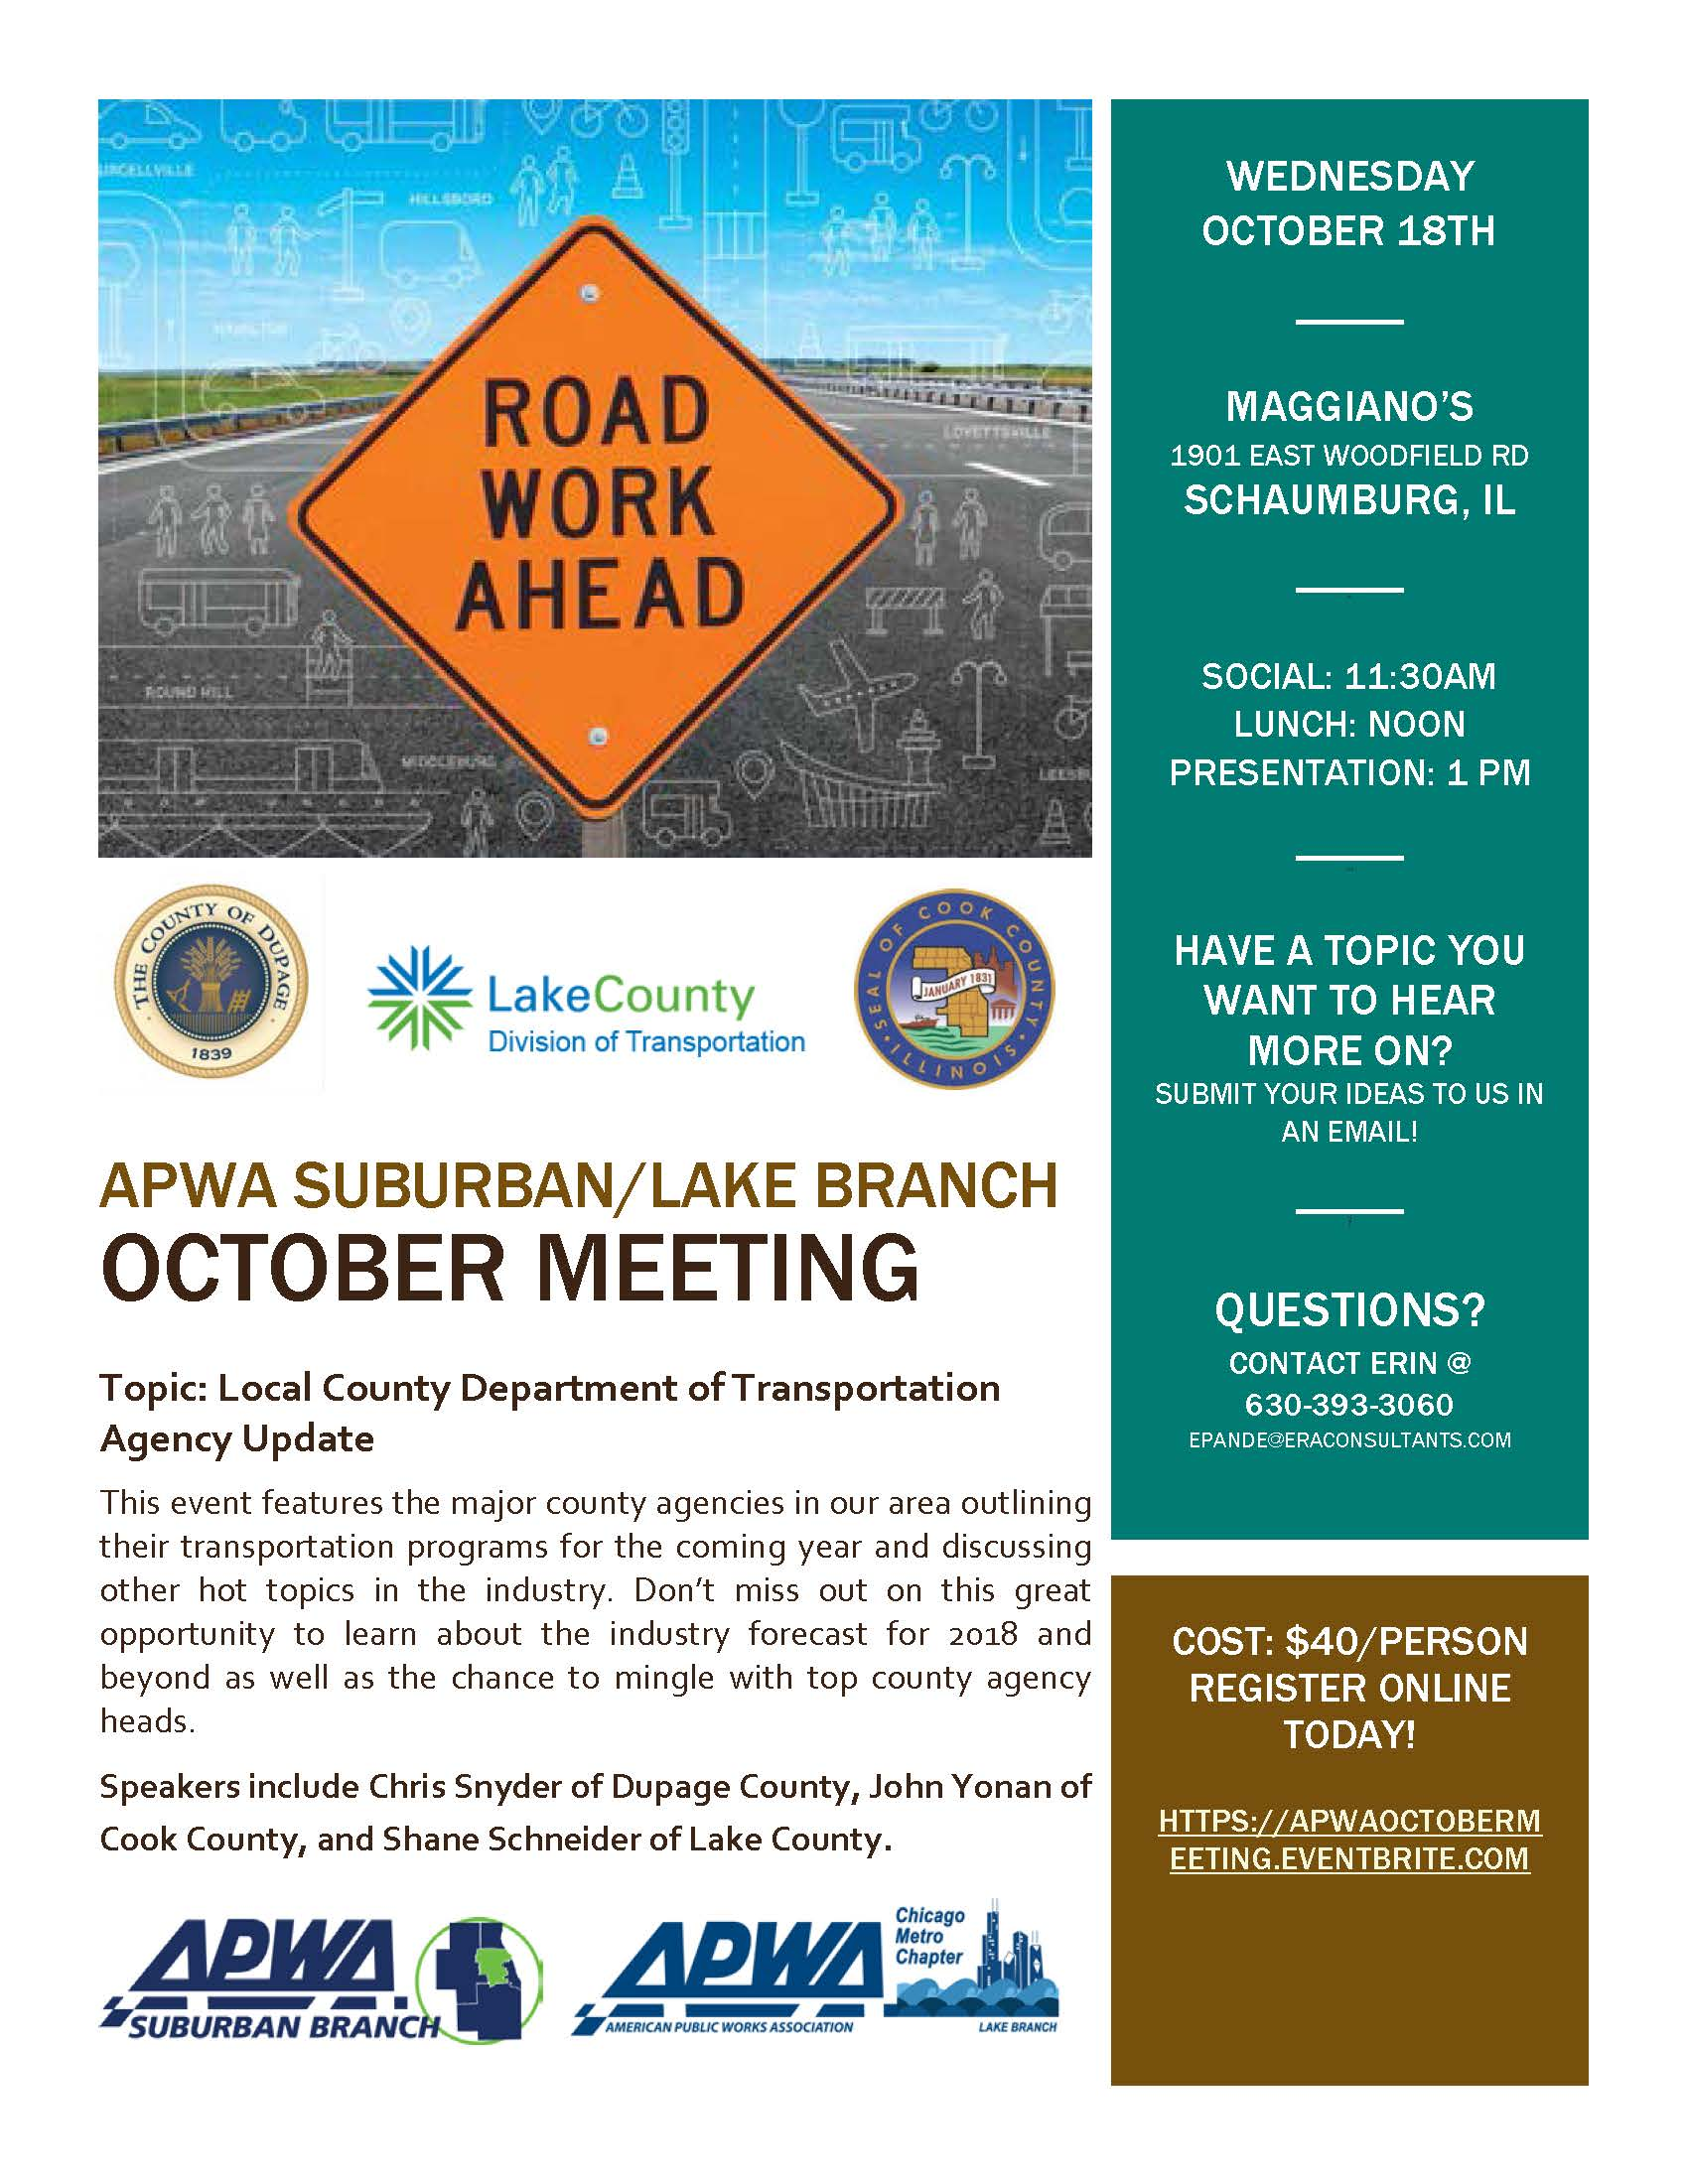 County DOT Update w/ Cook, DuPage, and Lake Counties [Lake, Suburban]